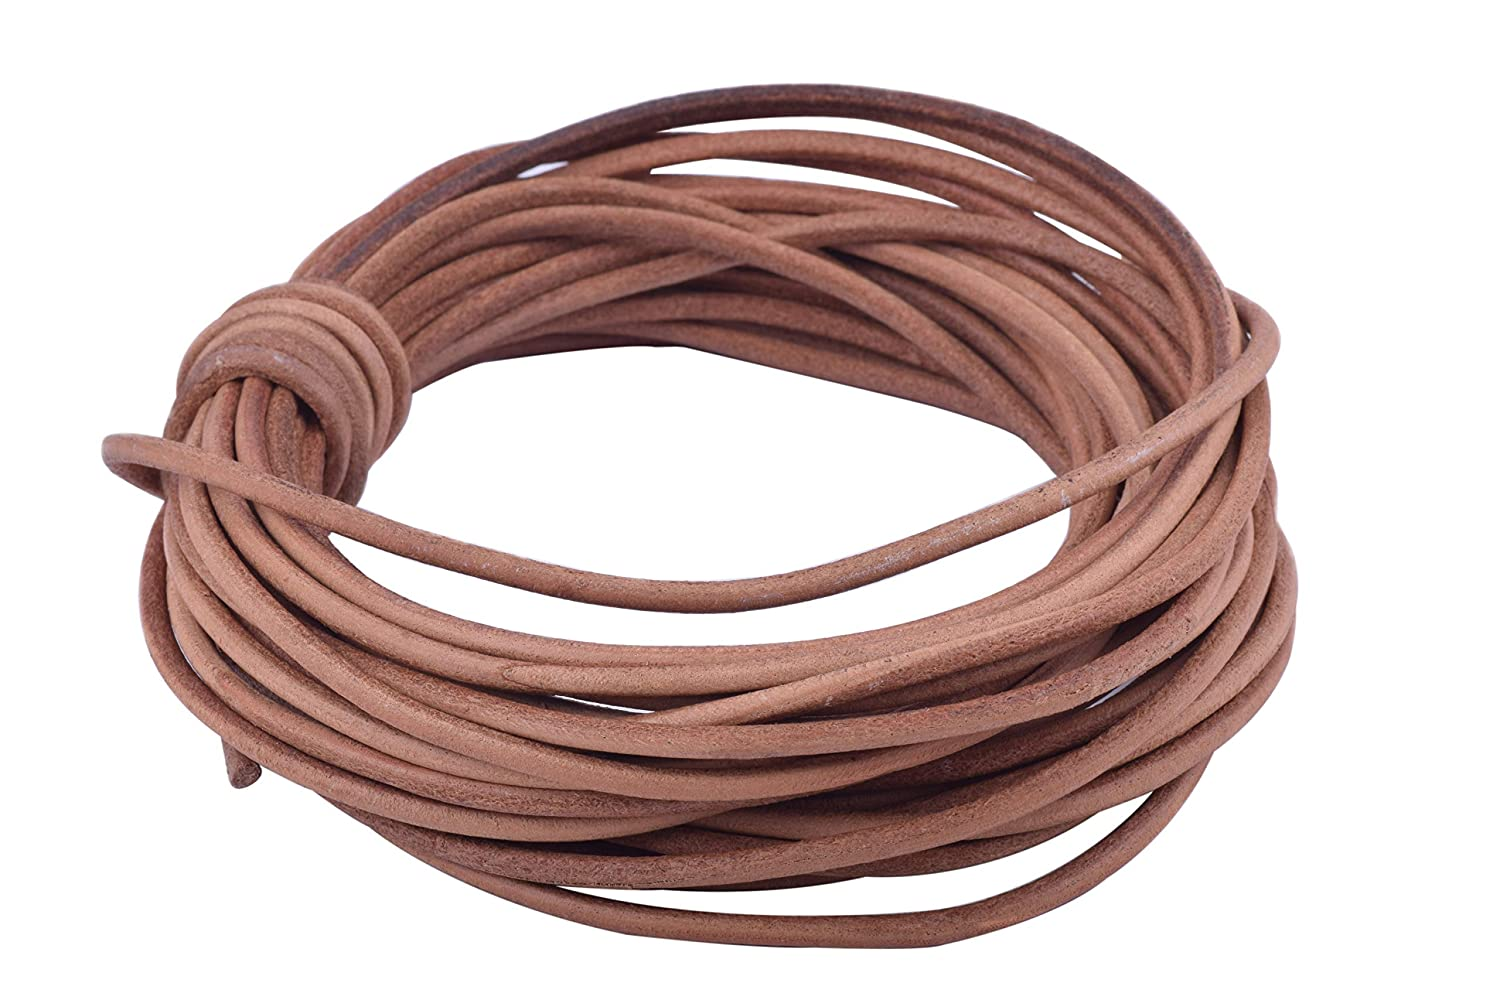 KONMAY 10 Yards 3.0mm Solid Round Real Leather Cord for Jewelry Making Crafting Beading Antique Brown